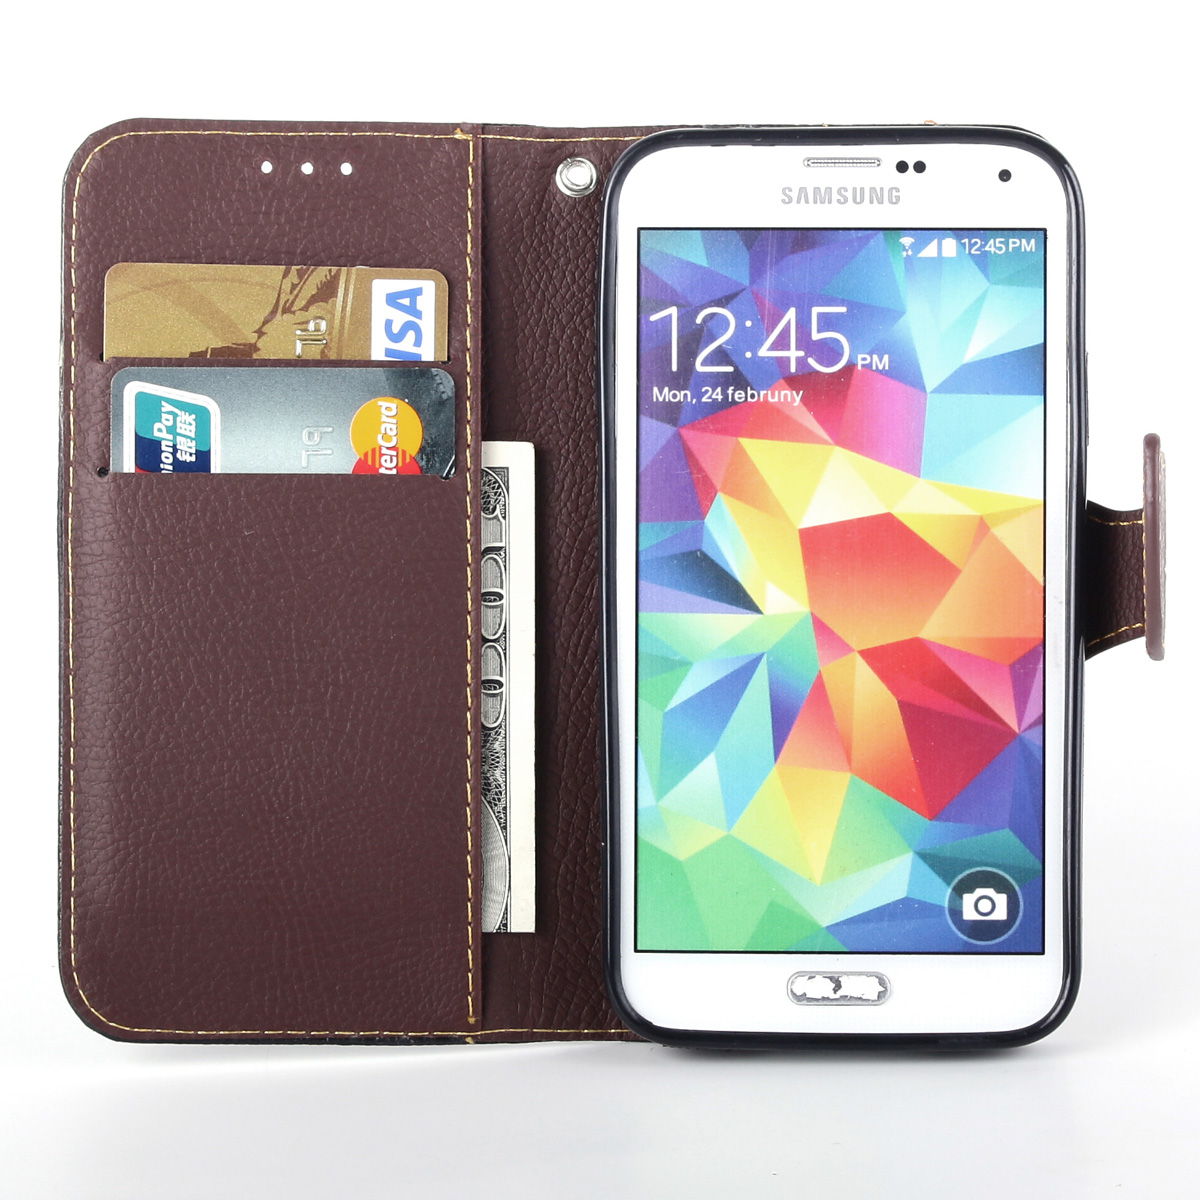 Case For Samsung Galaxy S6 Edge Plus S6 Edge+ G9280  Cover Soft Silicone & Flip Leather Case For Galaxy S6 Card Slot Phone Shell